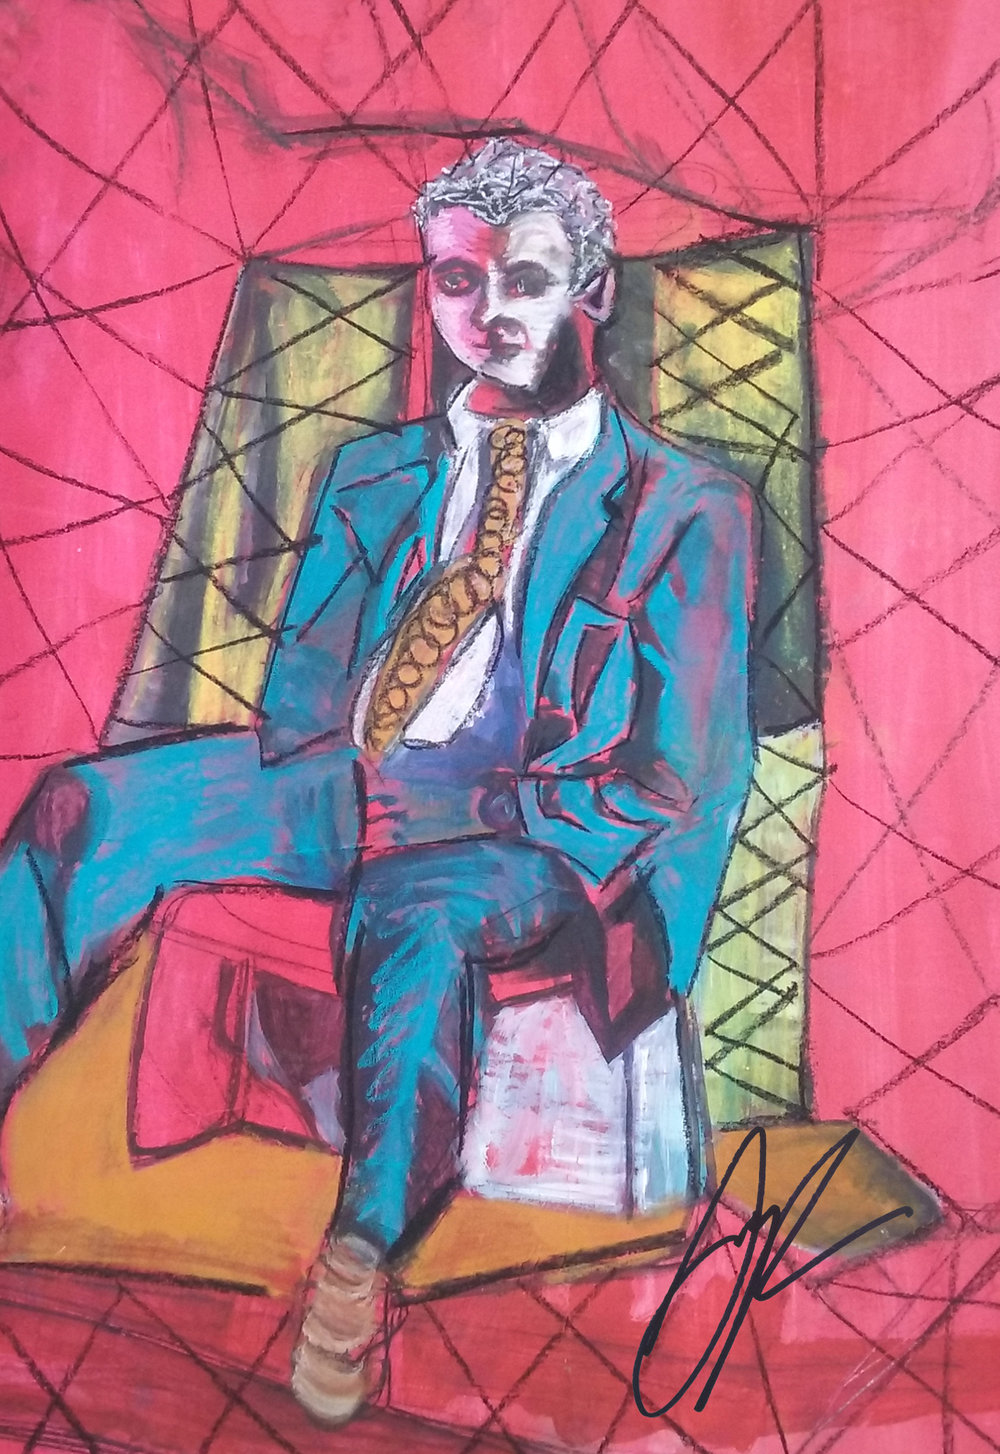 'White Collar'  by Sophia Parun. Click   here   to buy this work.